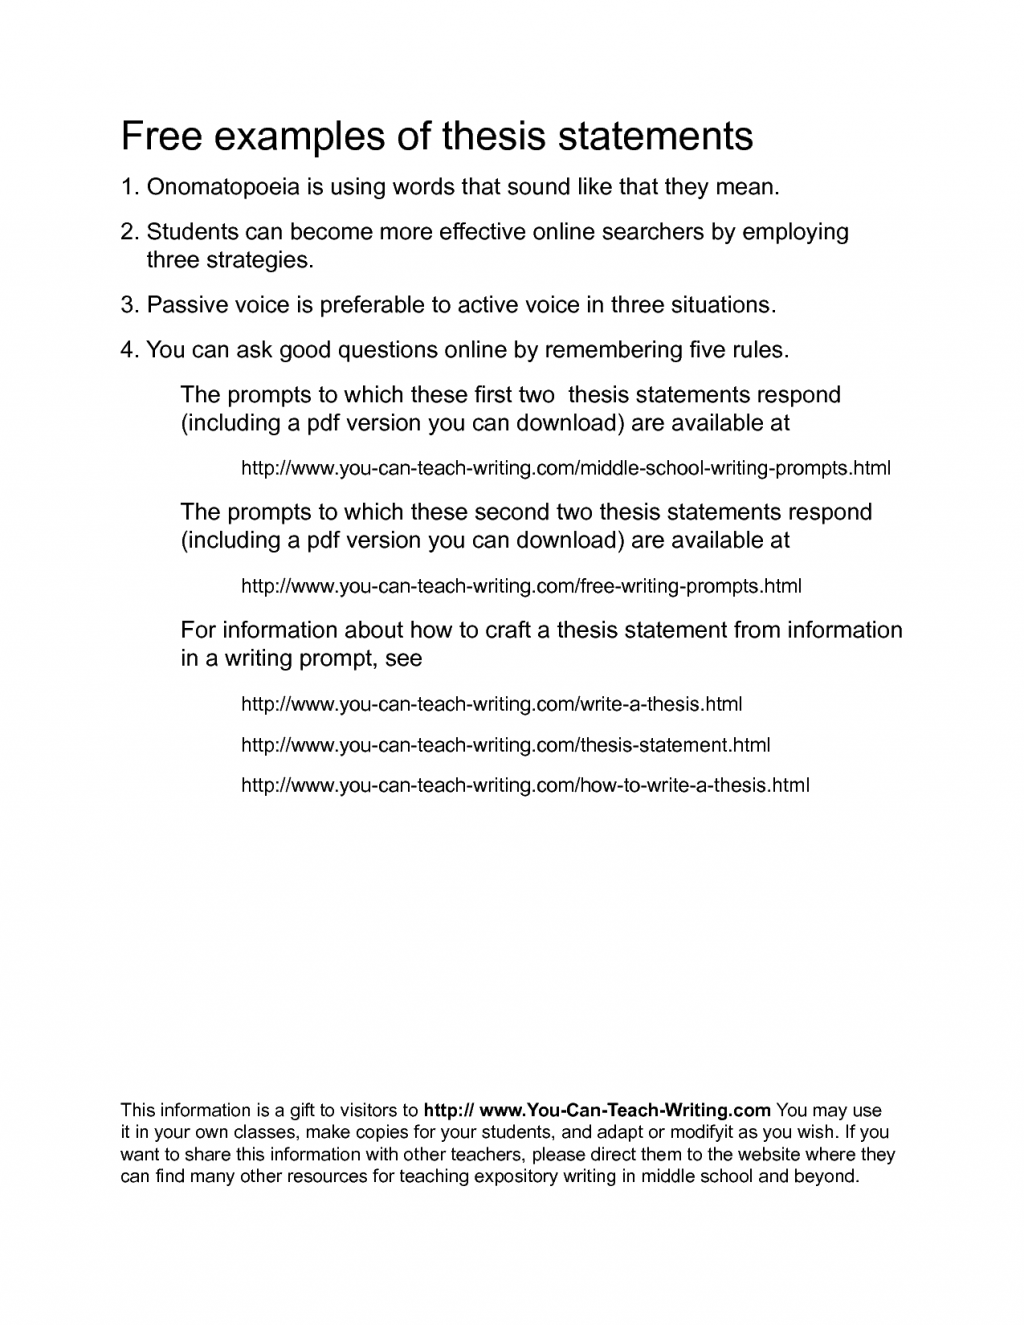 016 How To Write Research Essay Thesis Statementtes Cover Letter Purpose Of 1024x1325 Excellent A Proposal Paper In Apa Format Mla Full